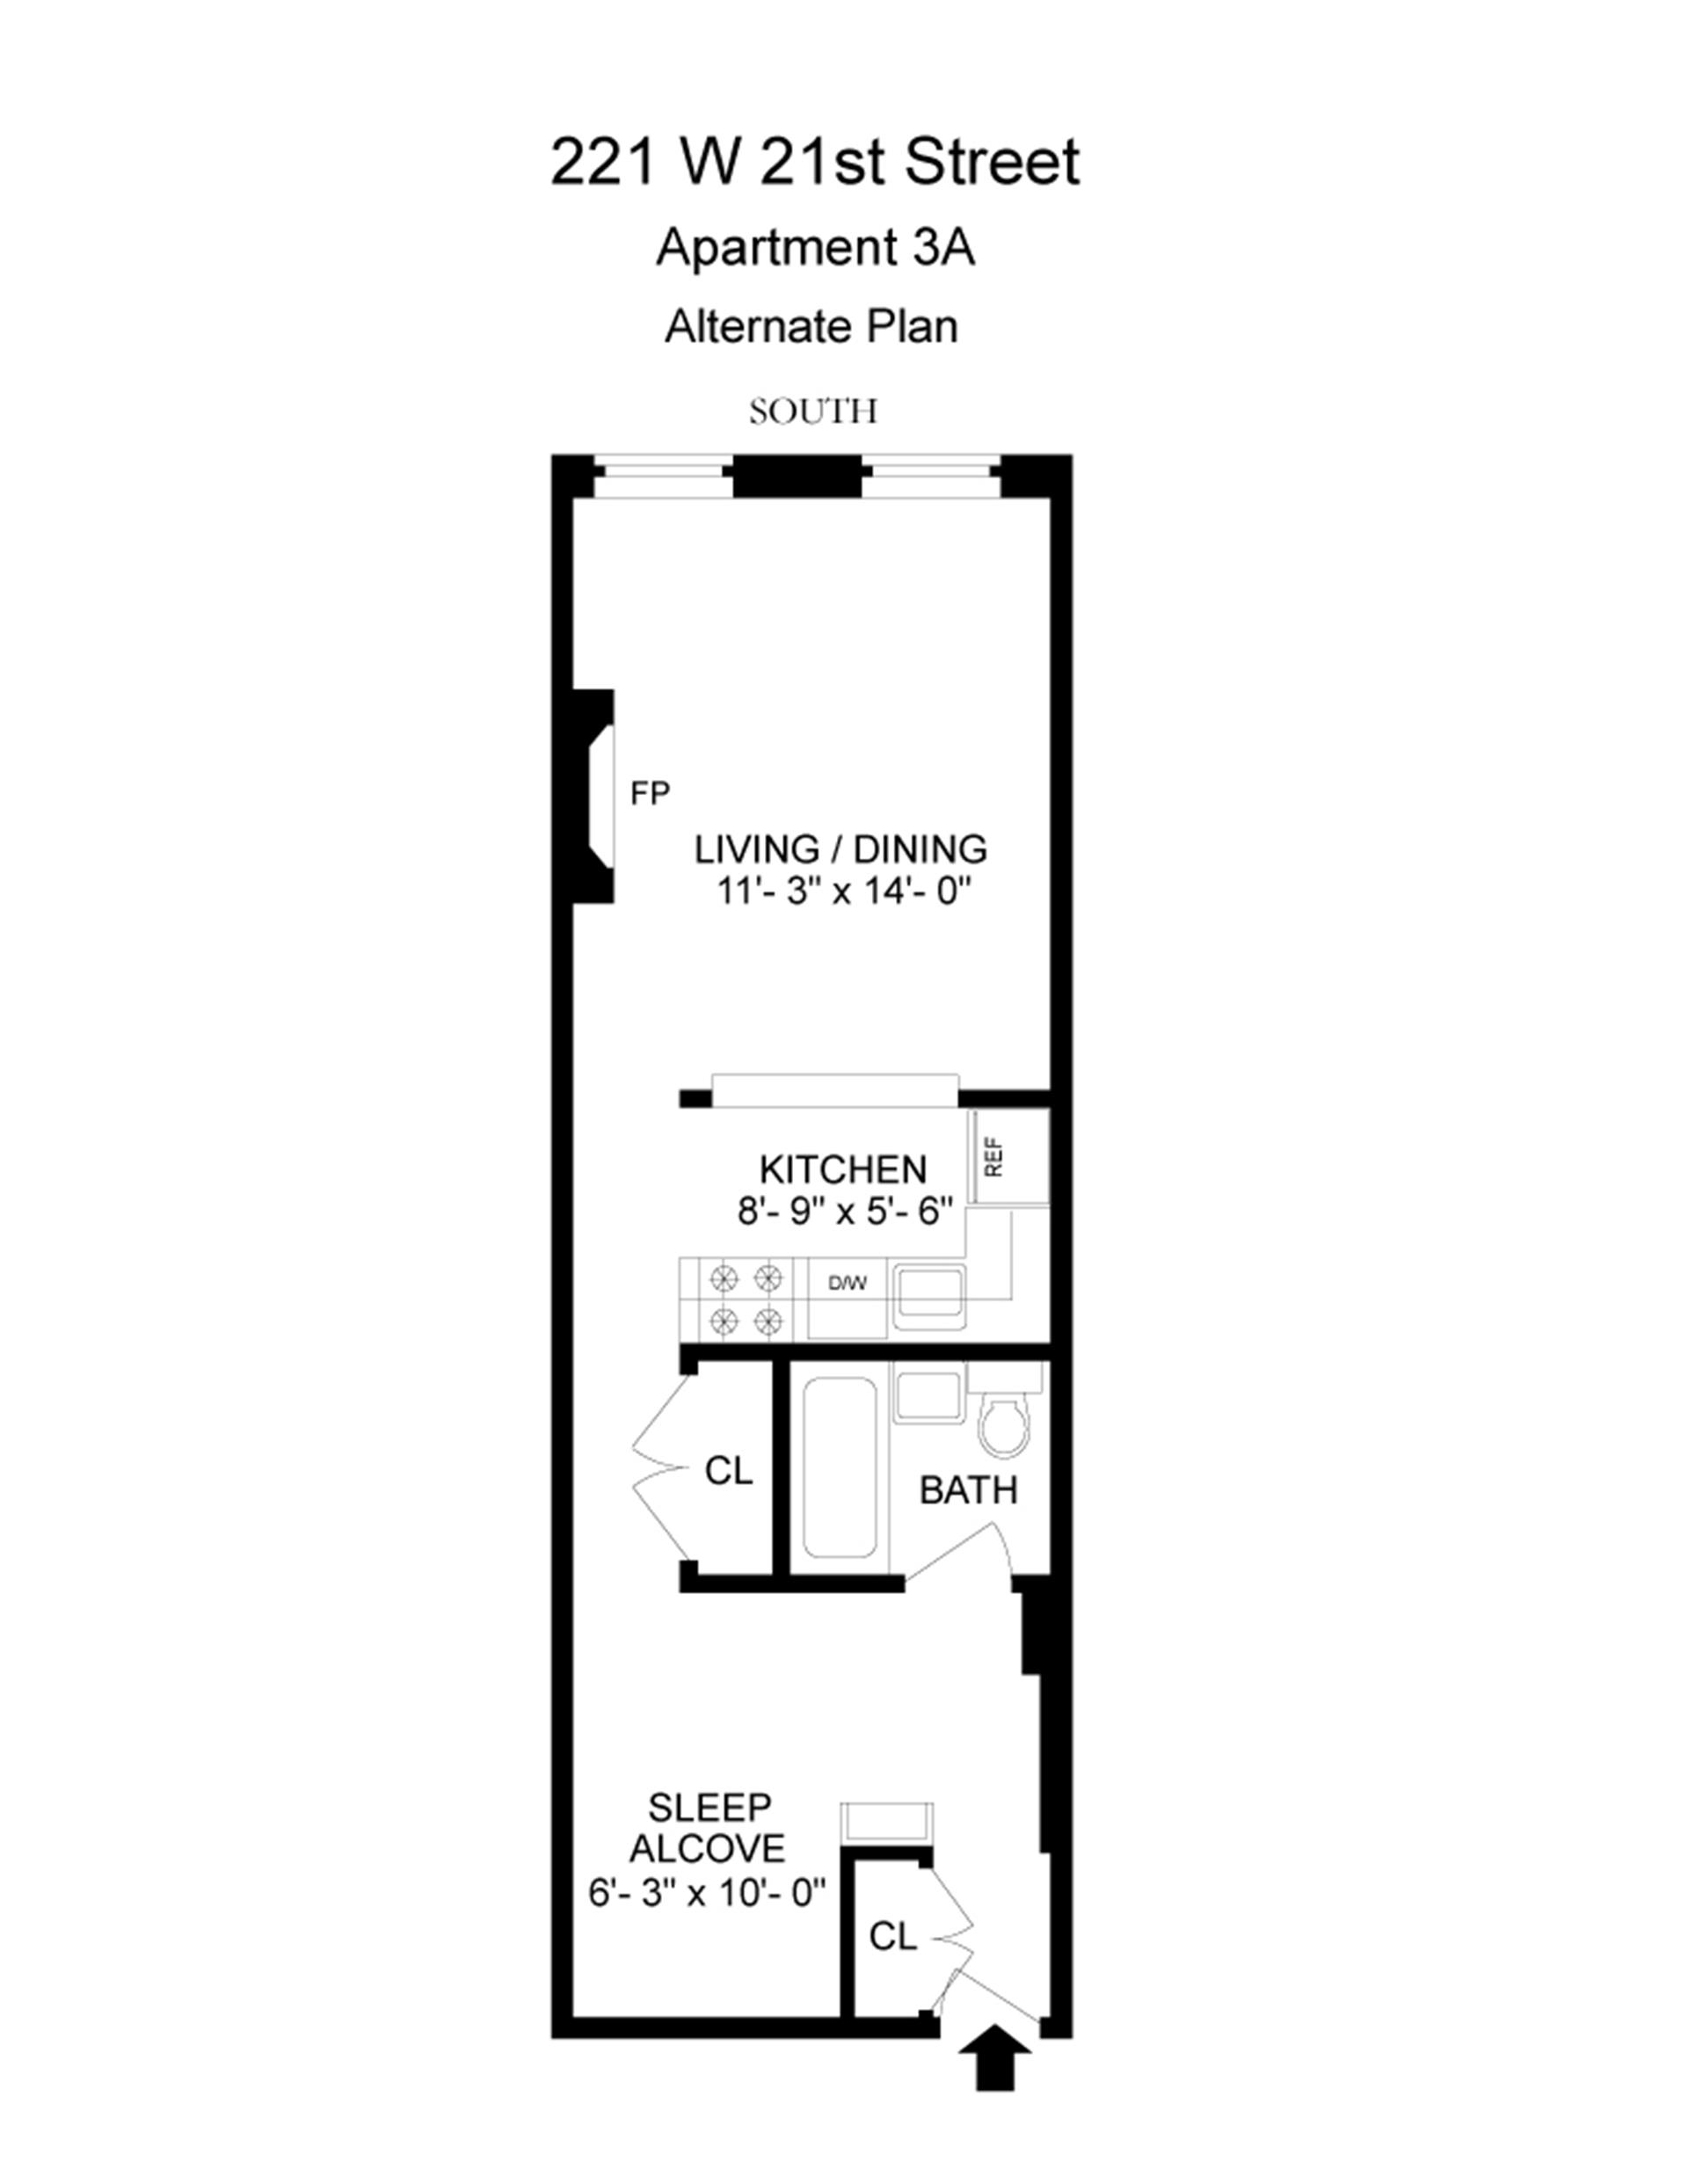 Floor plan of 221 West 21st St, 3A - Chelsea, New York